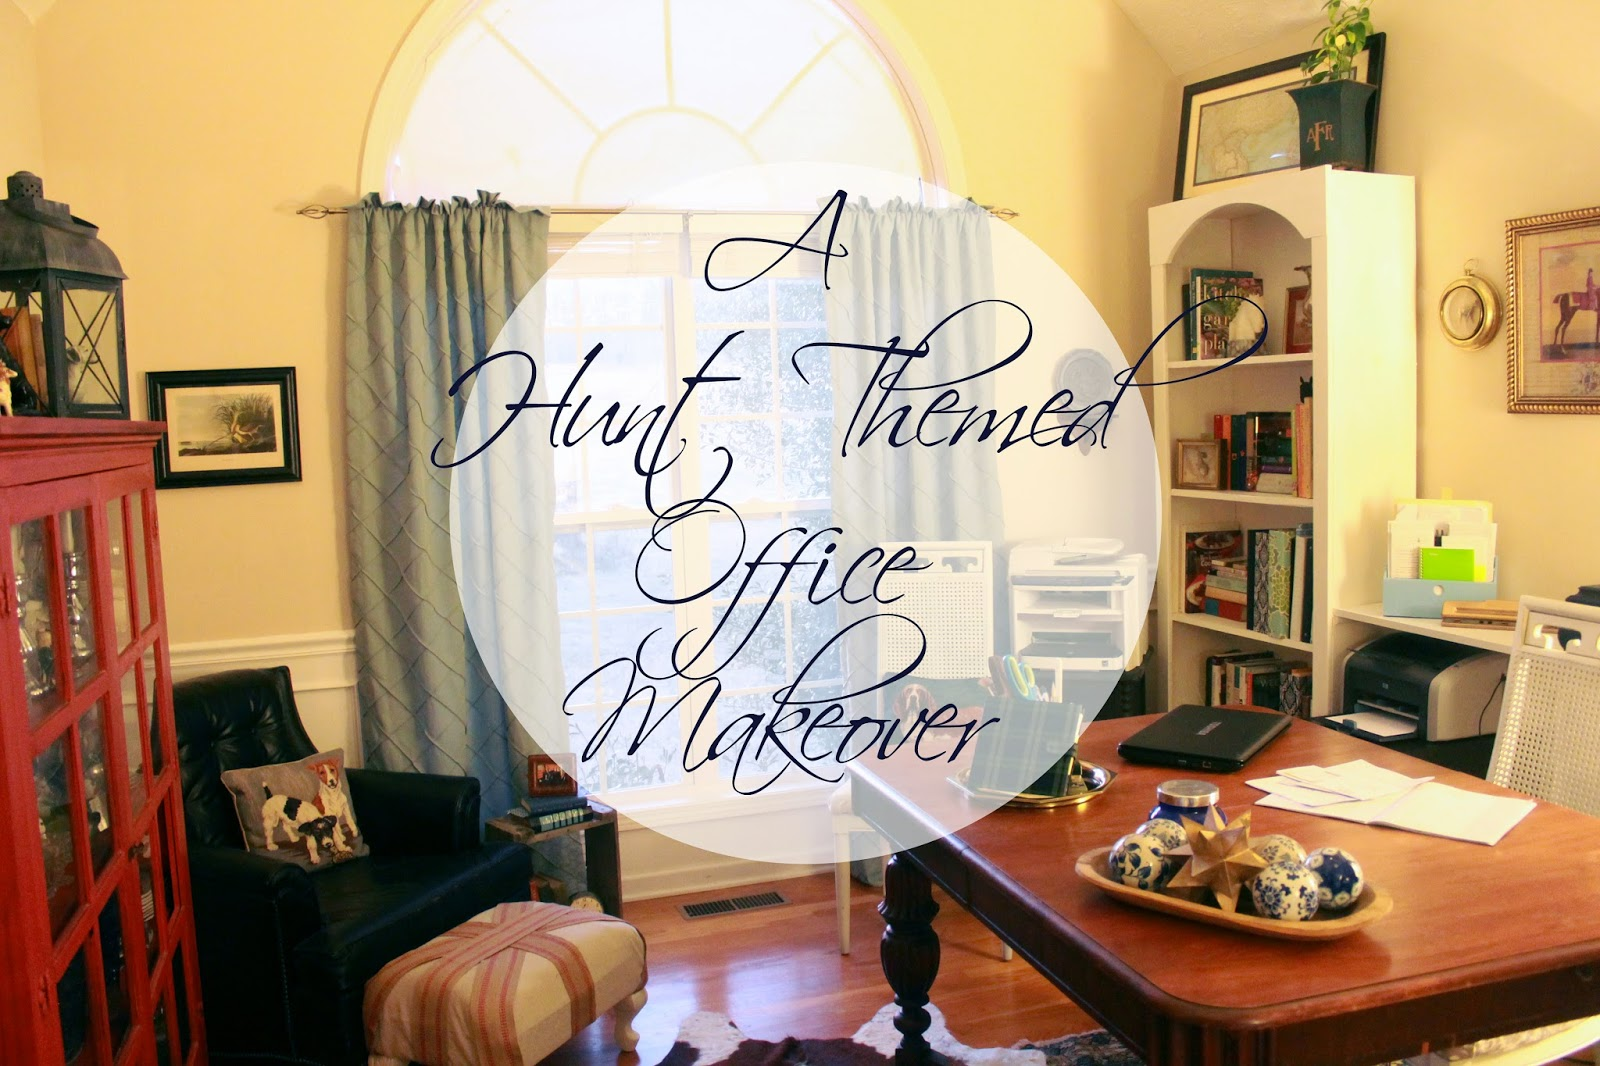 amazing office makeover with hunt theme